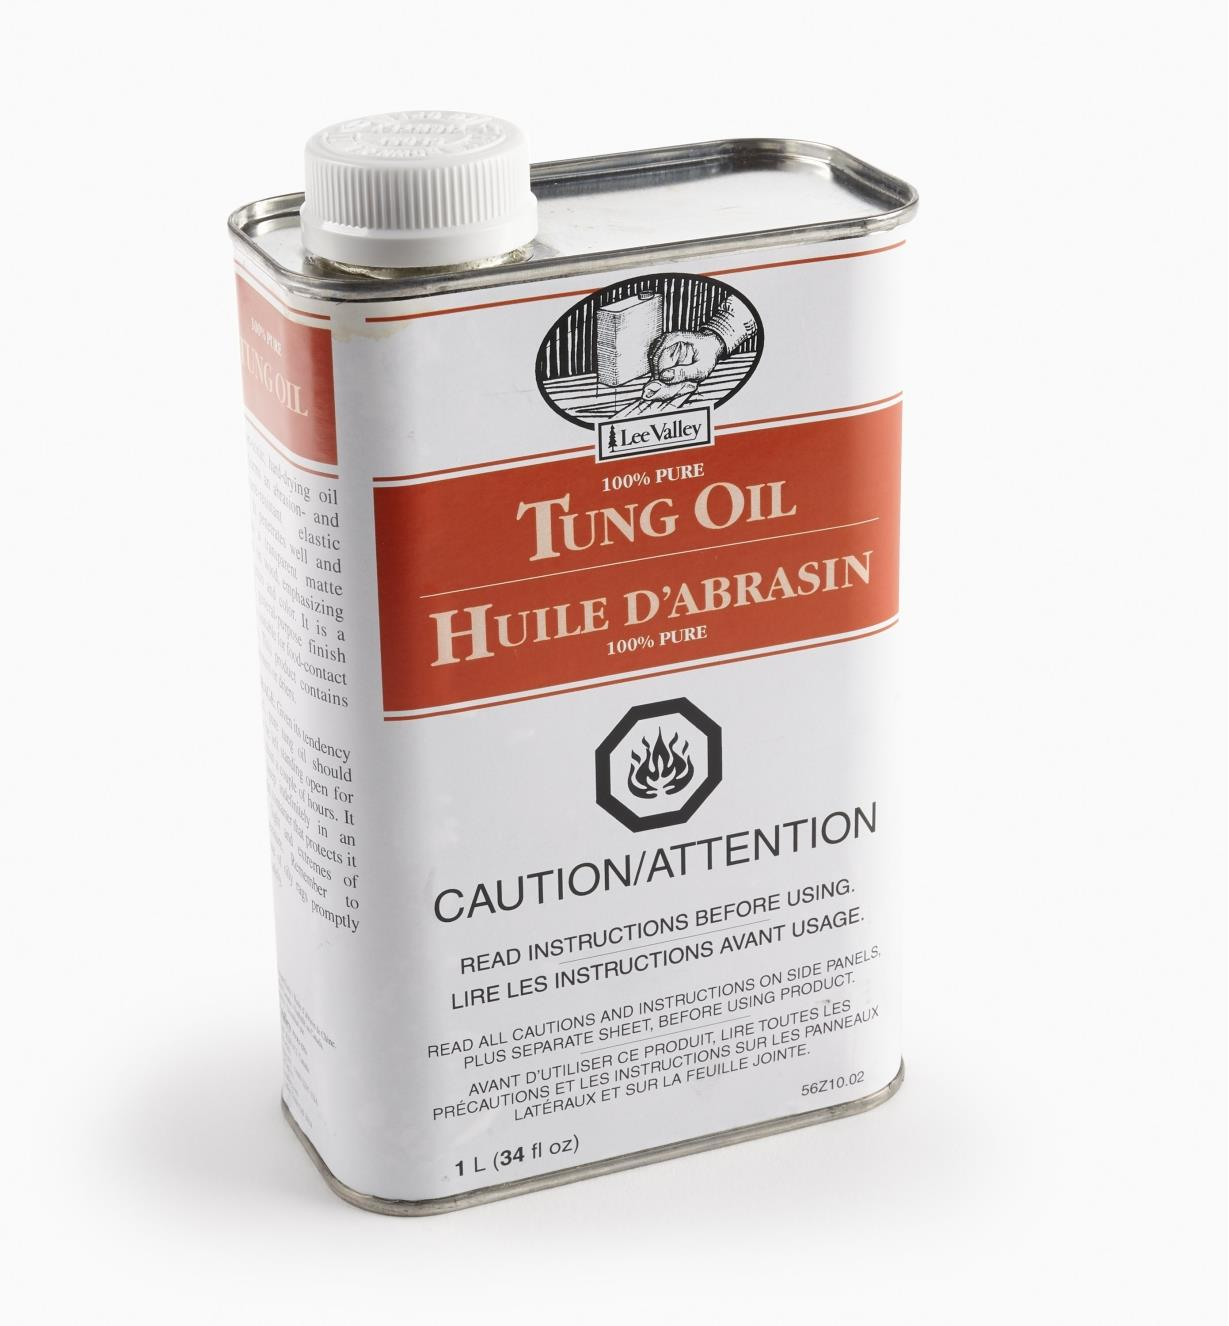 56Z1002 - Tung Oil, 1l/34 oz